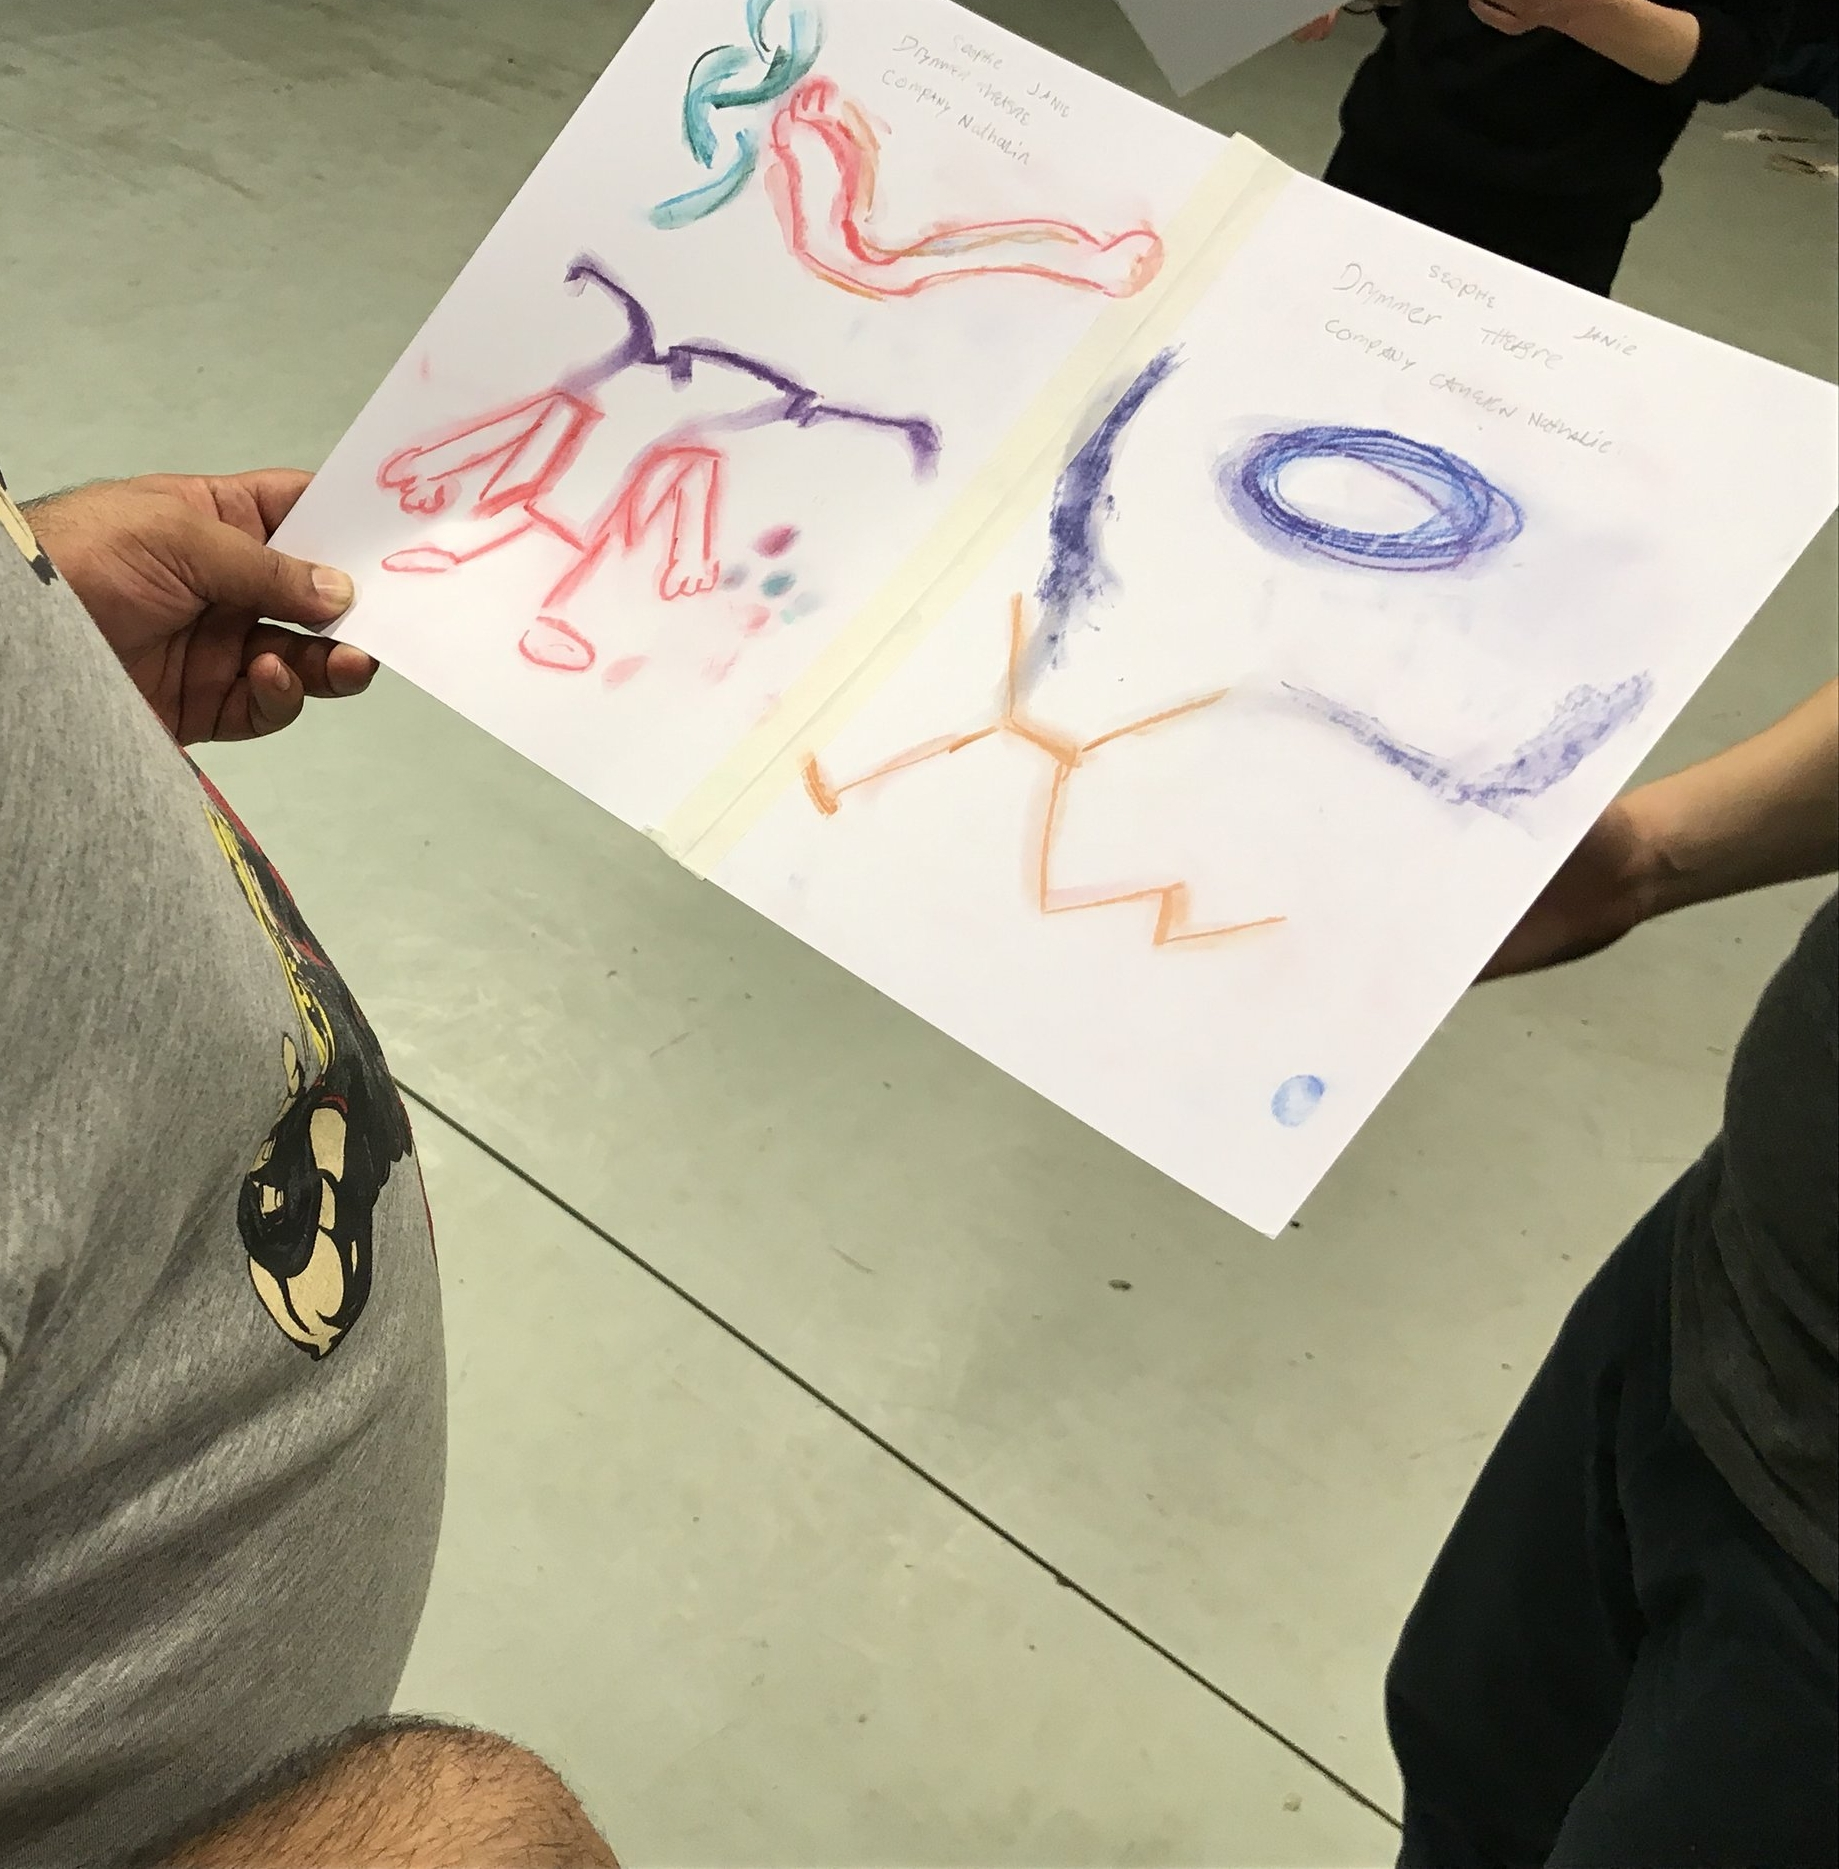 We translate - We translate the drawings back into movement.Pizza making, twist and jives and sun salutations.